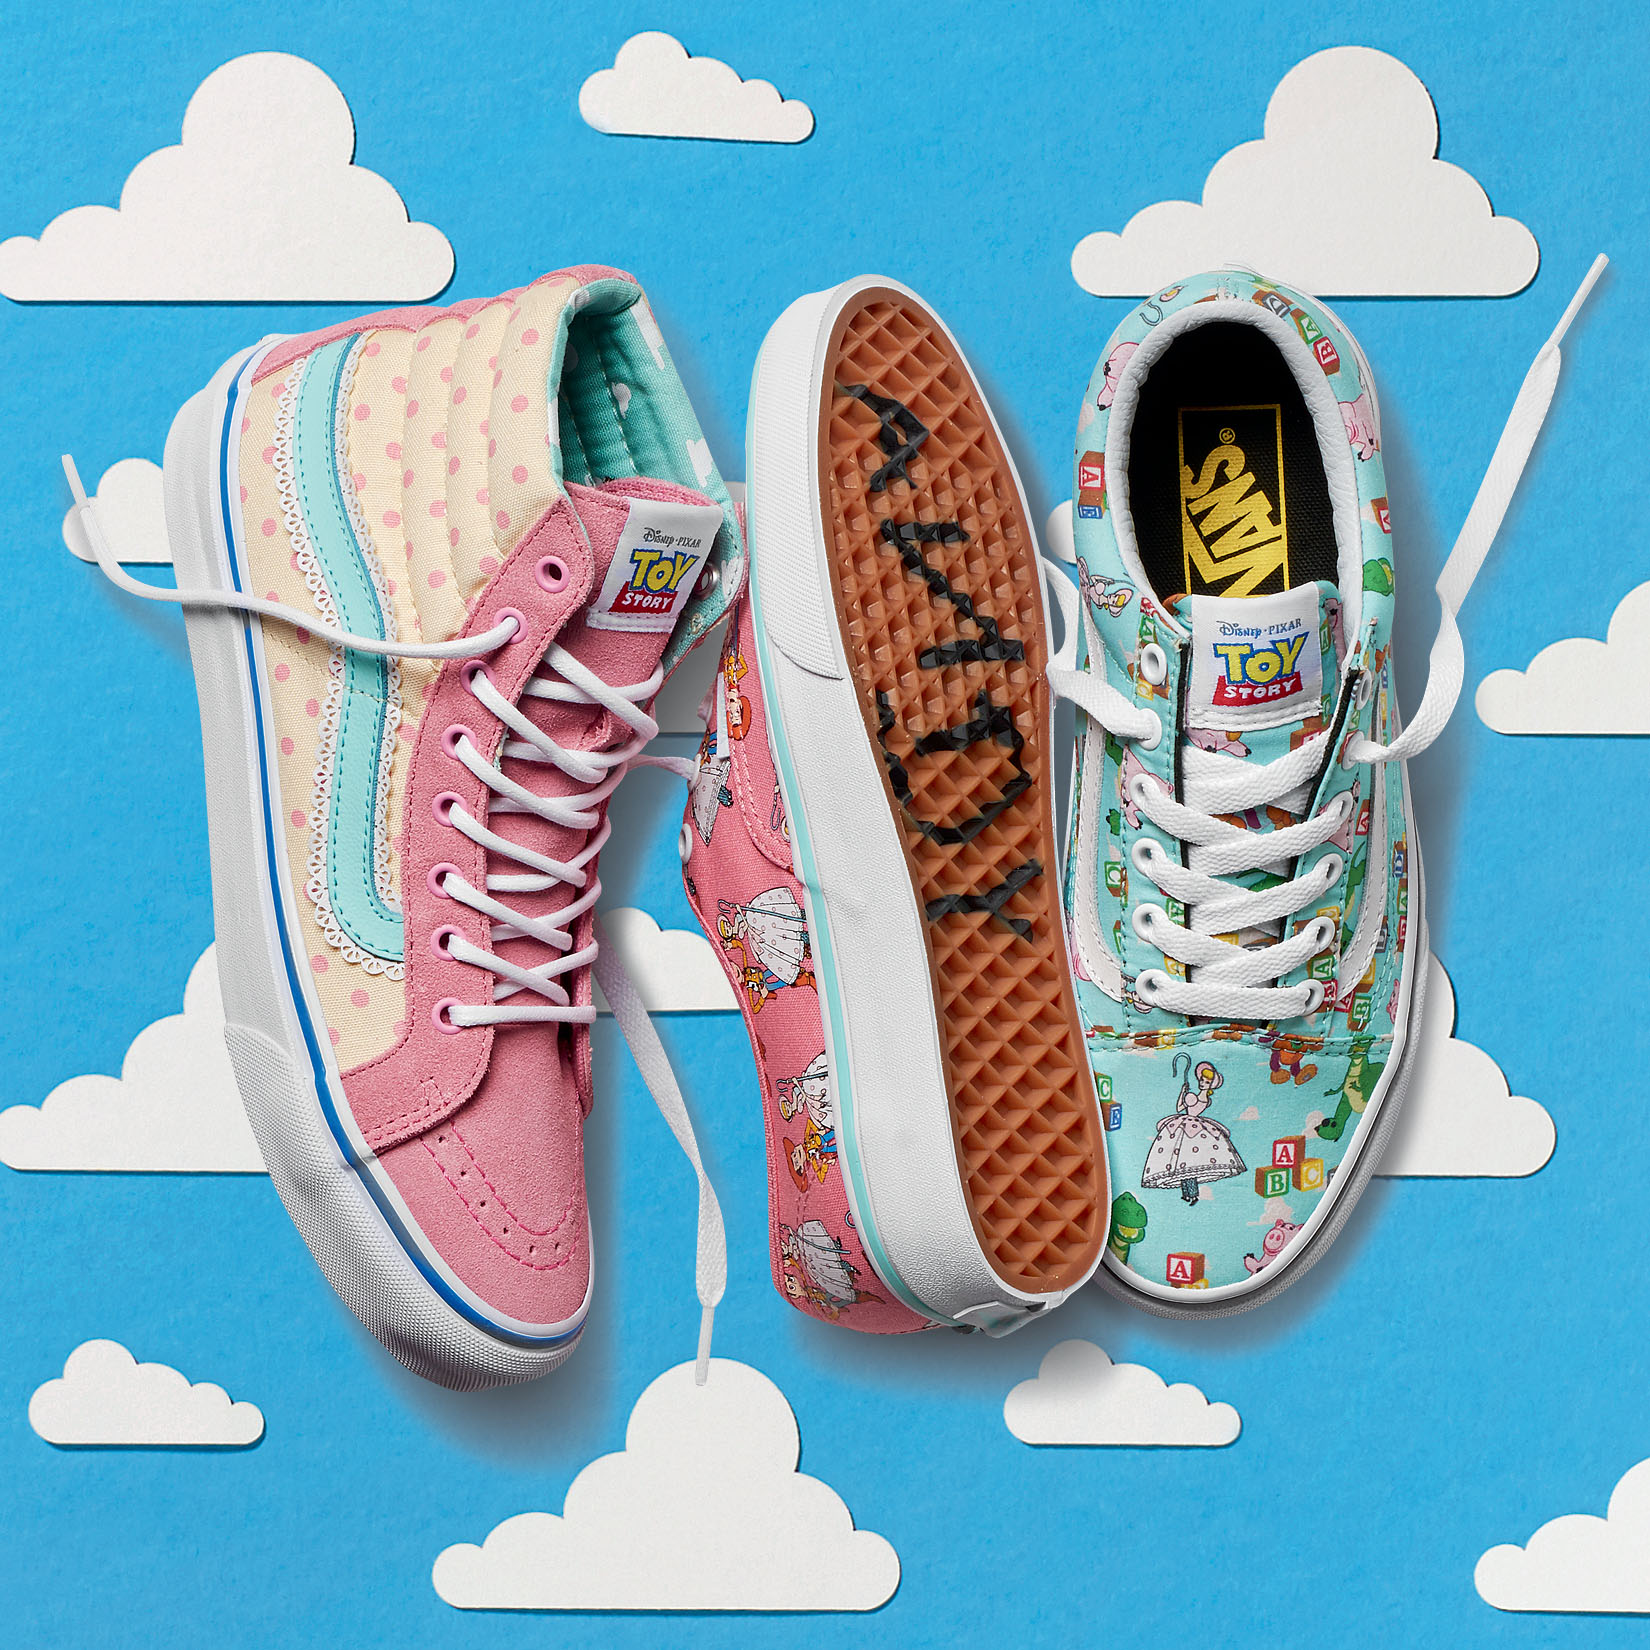 Vans Toy Story 2 3